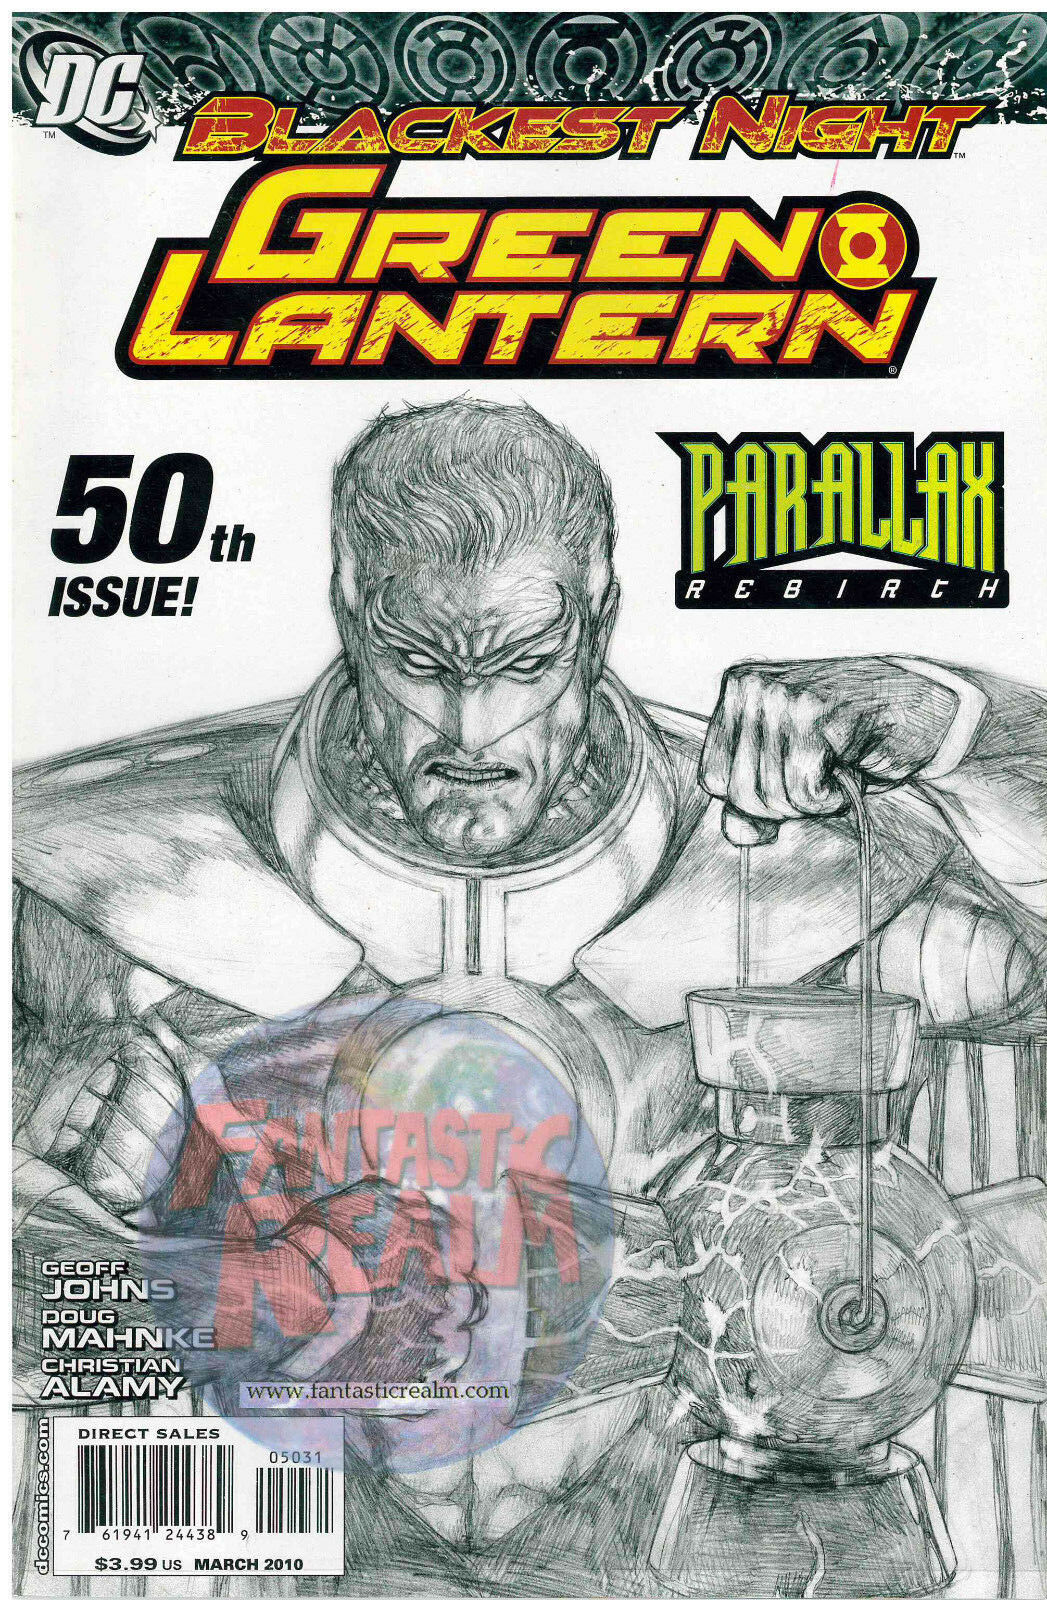 Blackest Night Green Lantern #50 sketch variant (2010) DC Comics